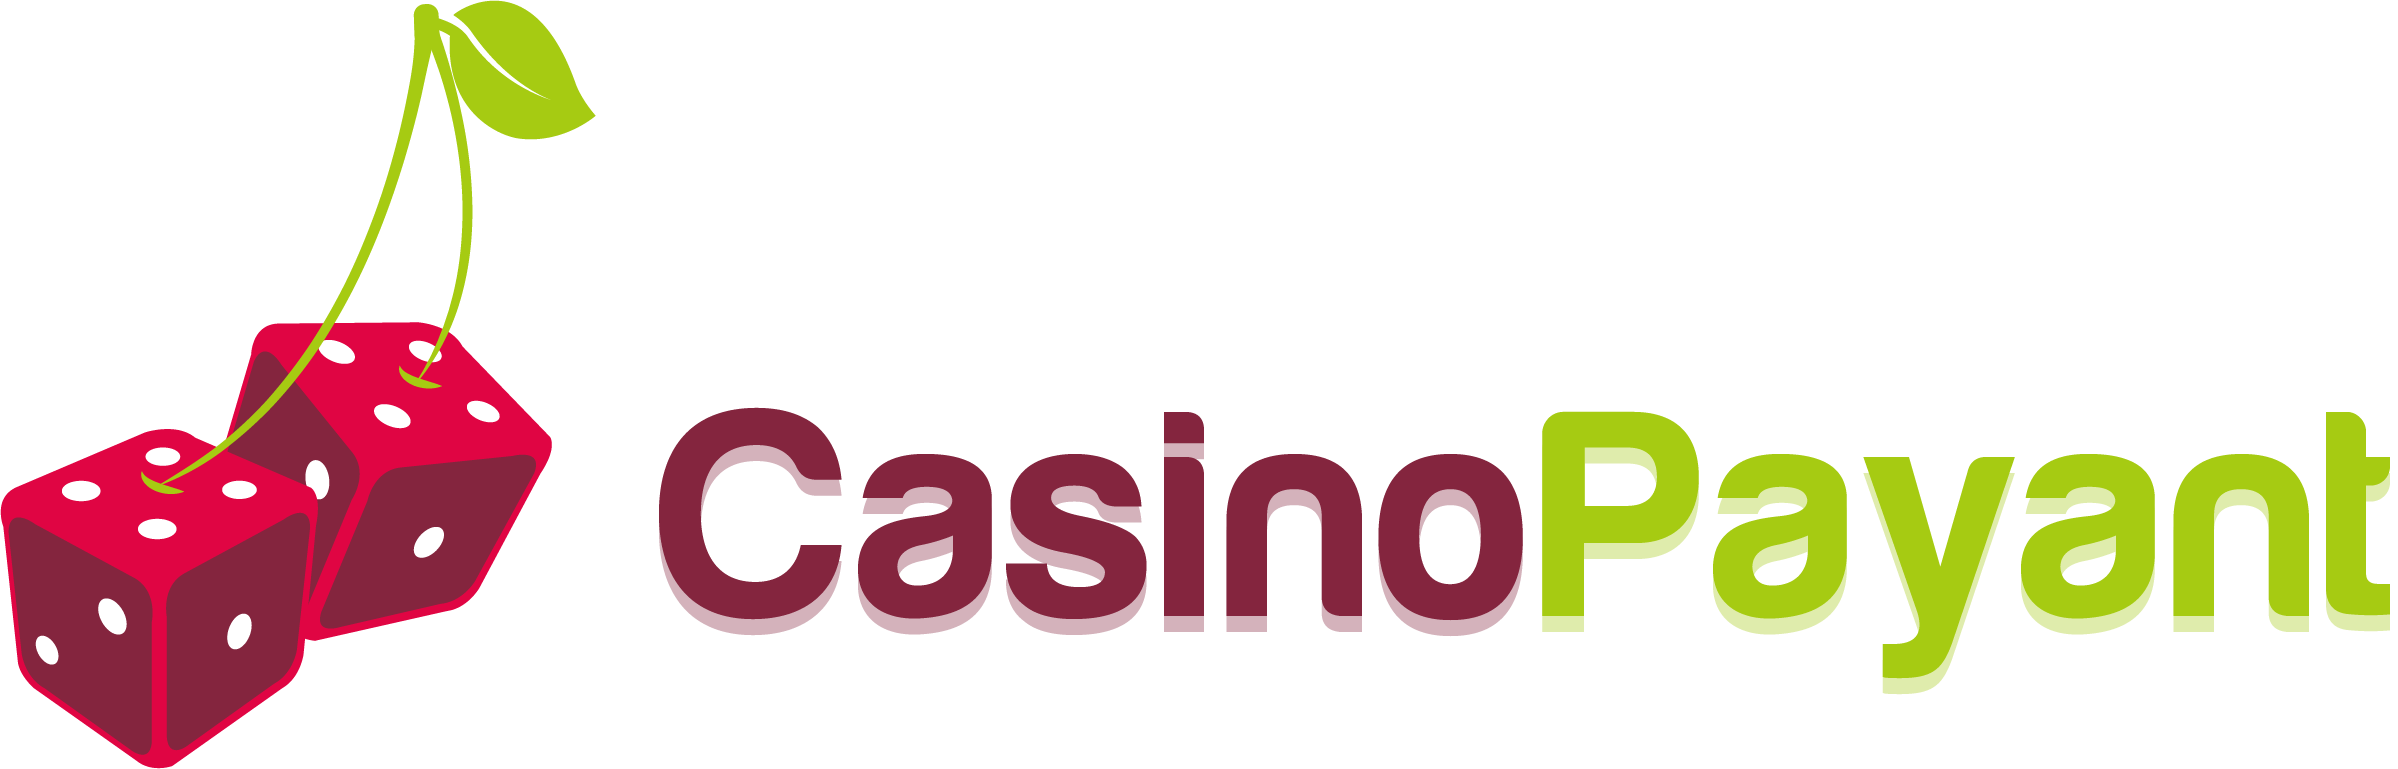 Casinopayant.com Logo